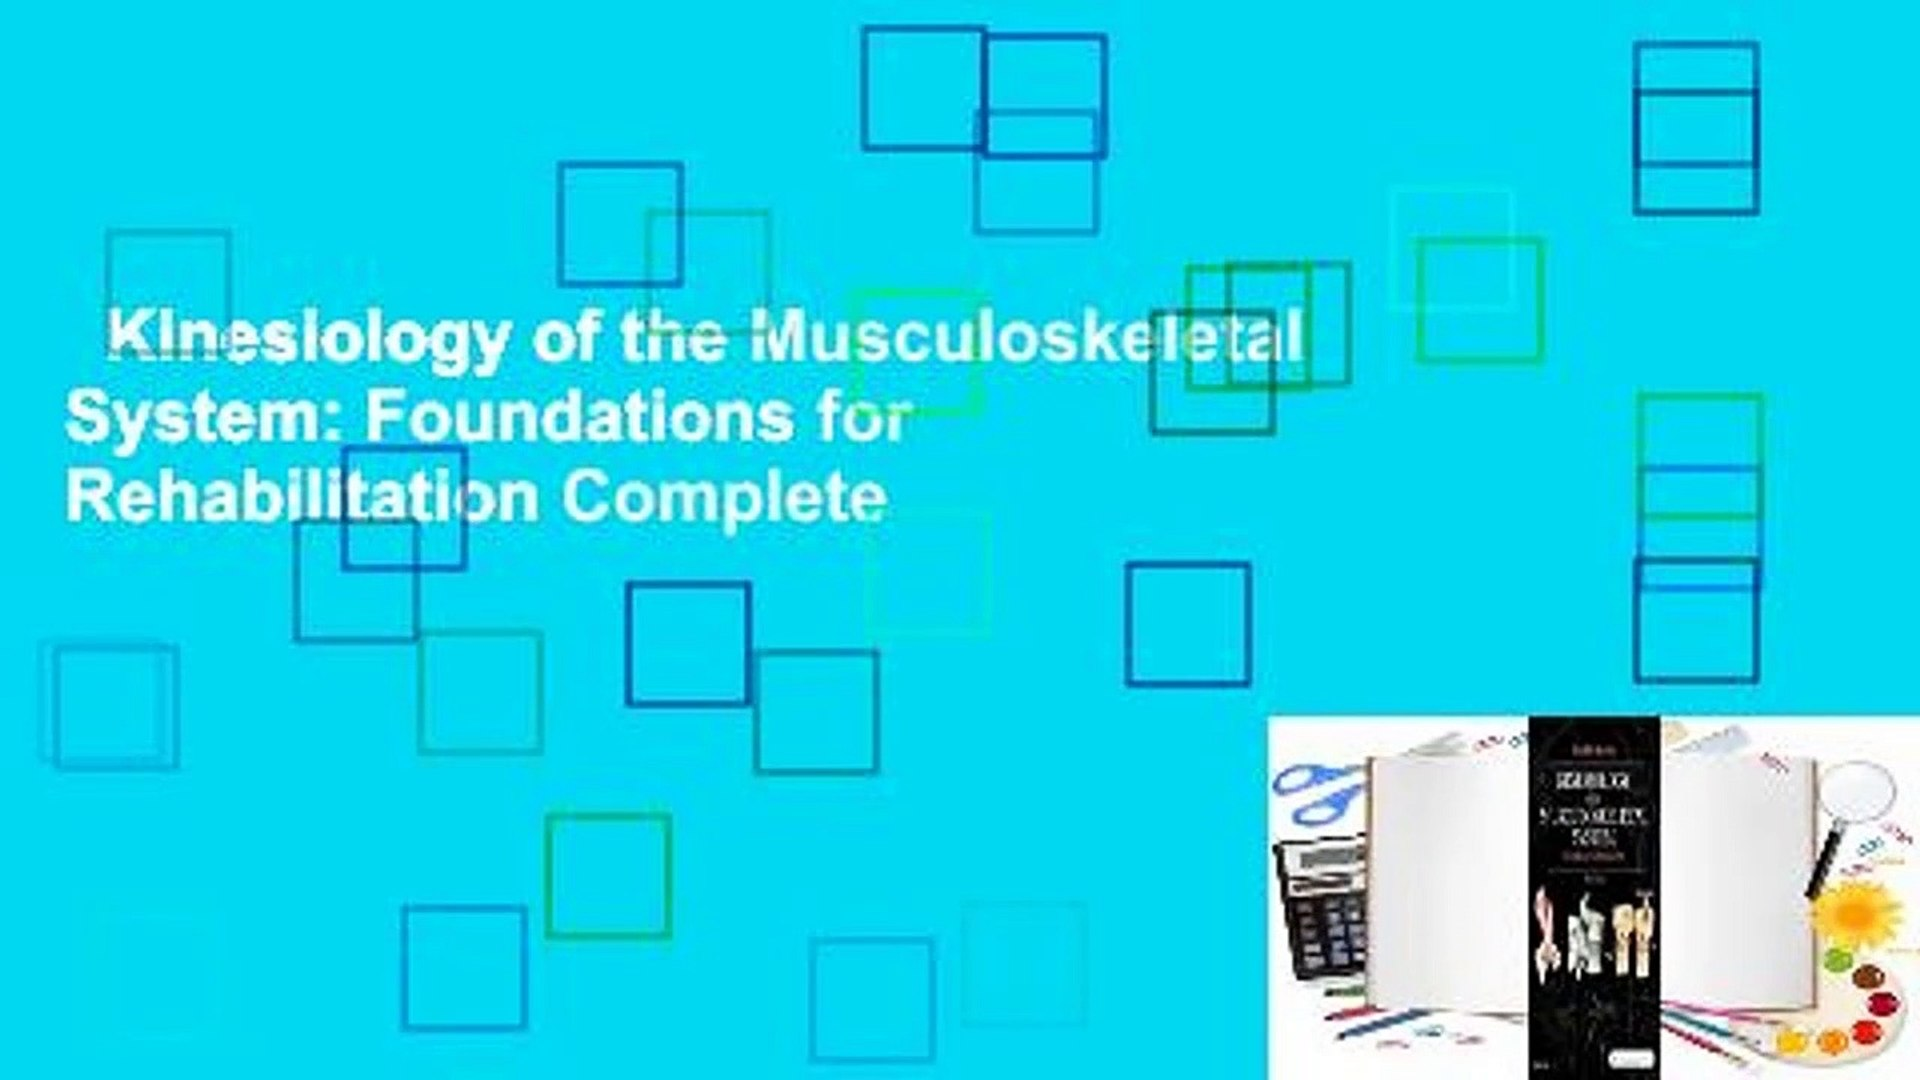 Kinesiology of the Musculoskeletal System Foundations for 1920x1080